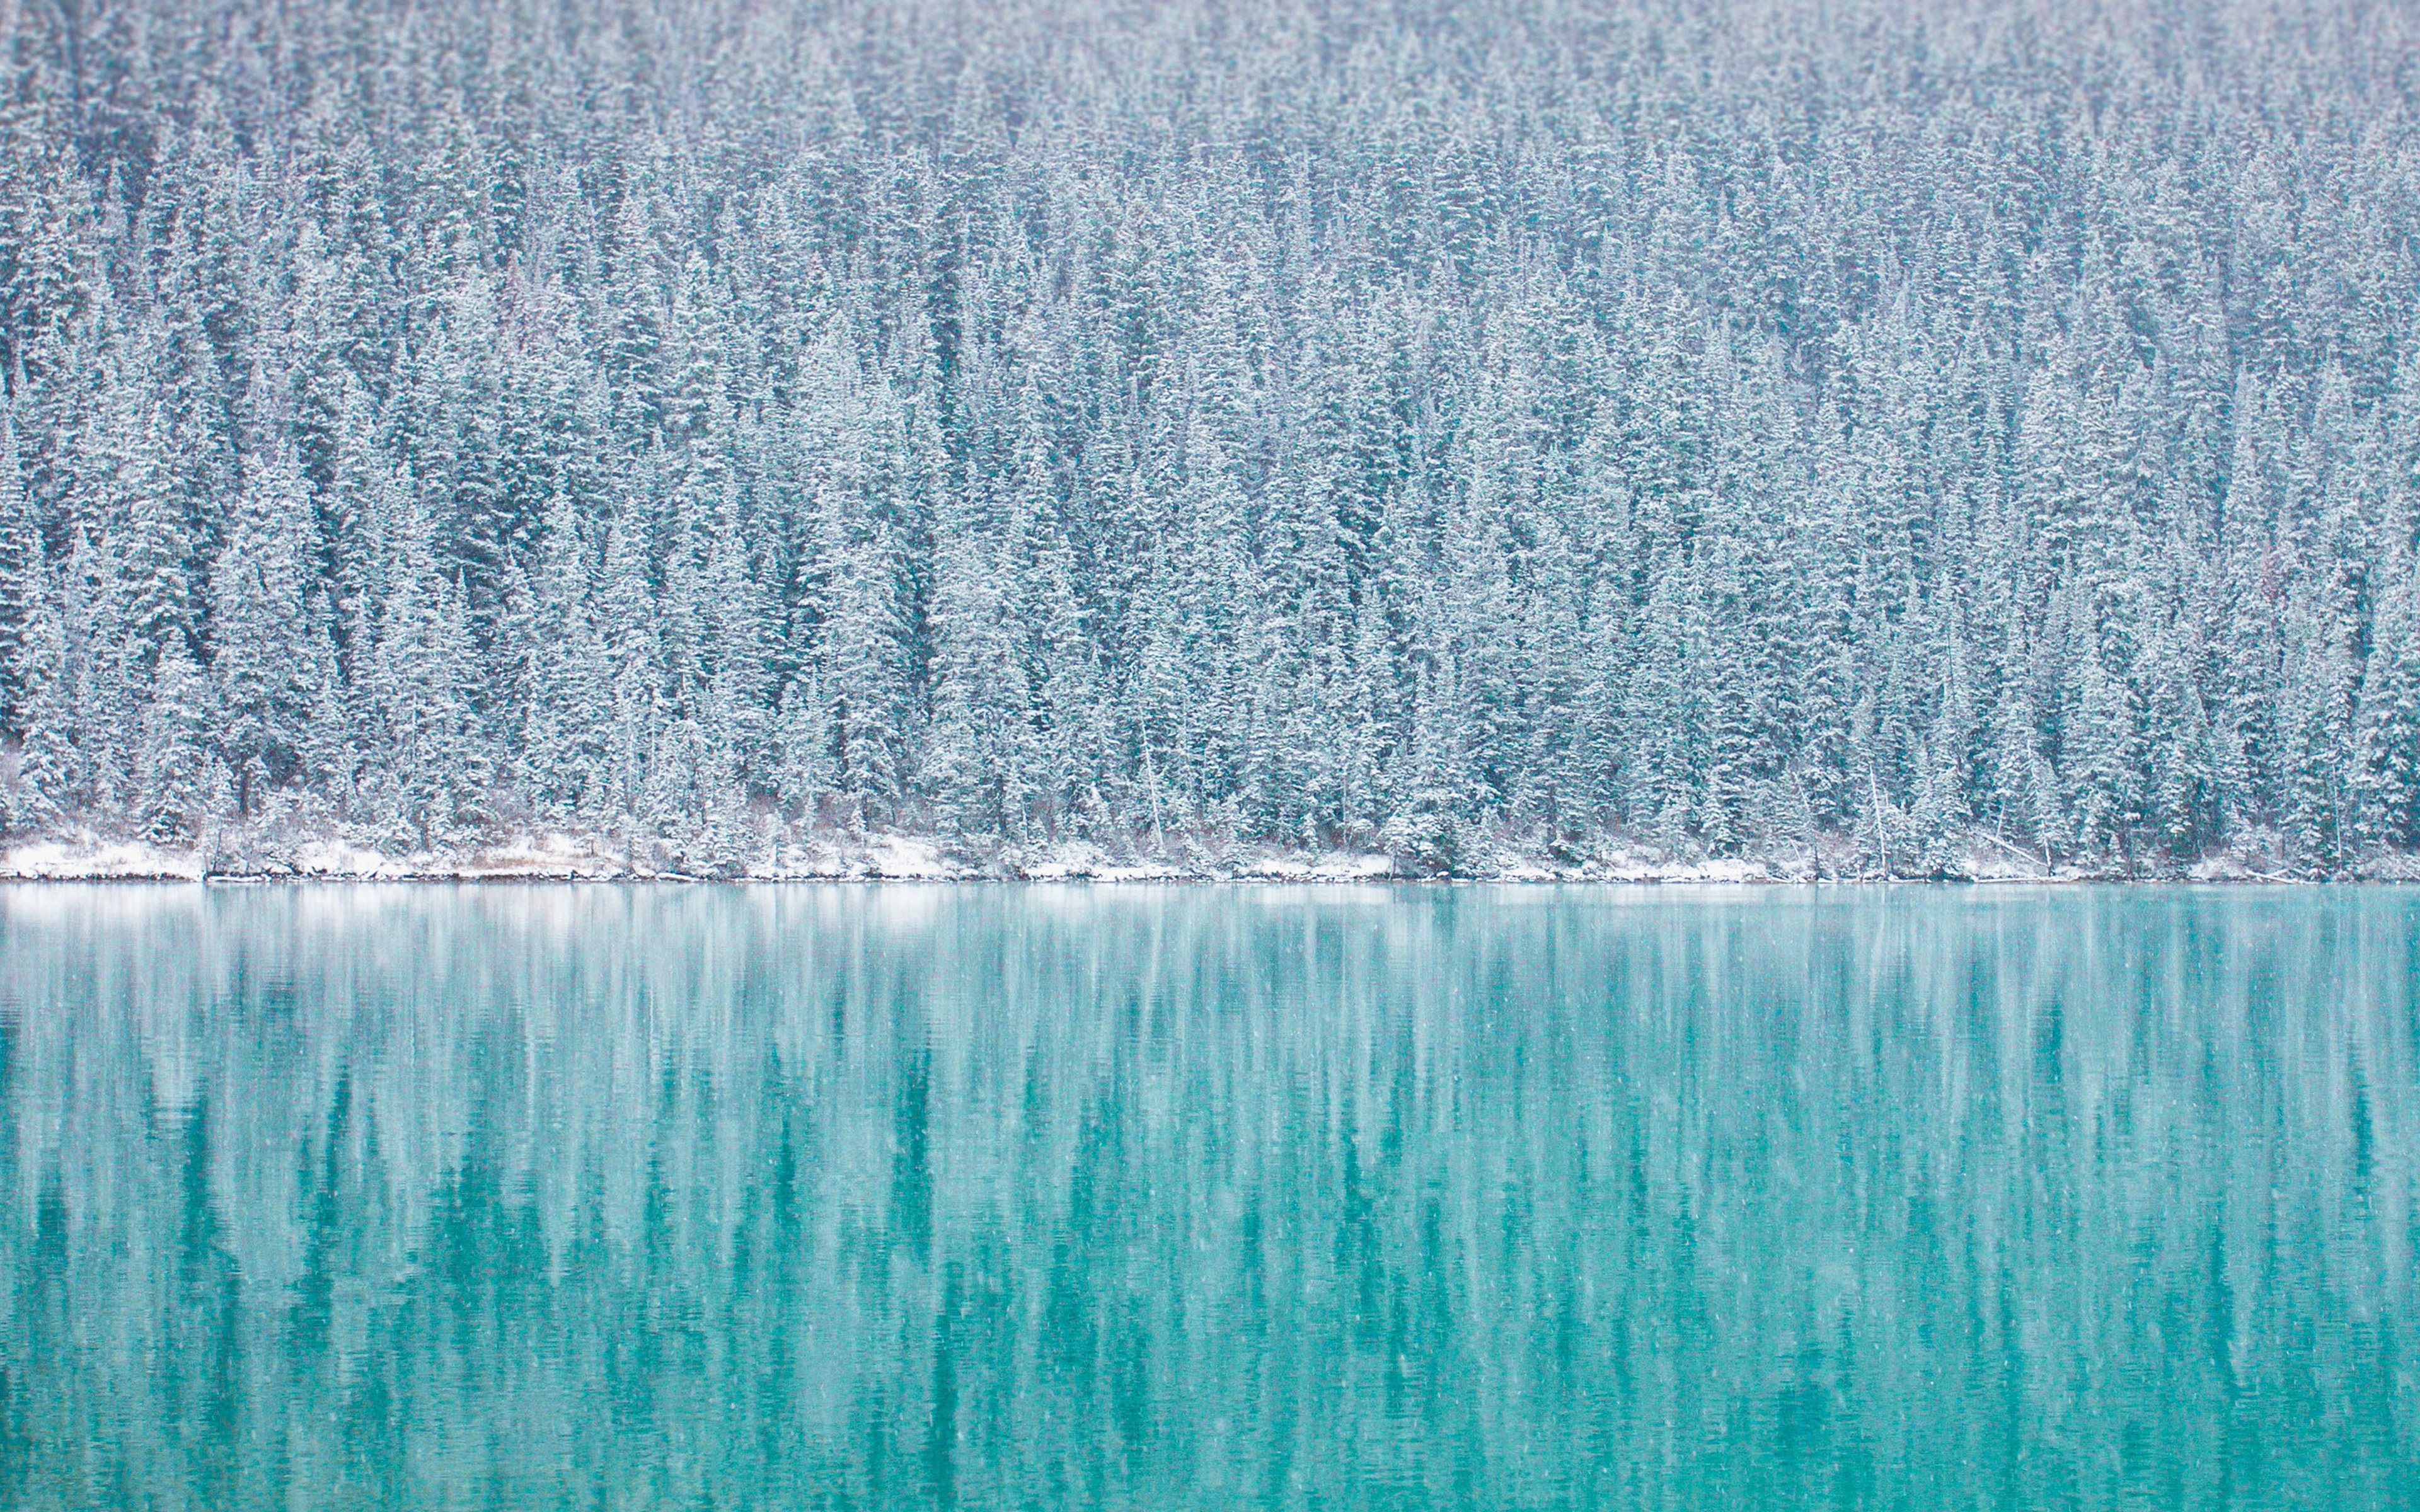 Free Wallpaper For Your Desktop And Ipad: Winter Wallpaper Pack For IPad, IPhone, And Desktop